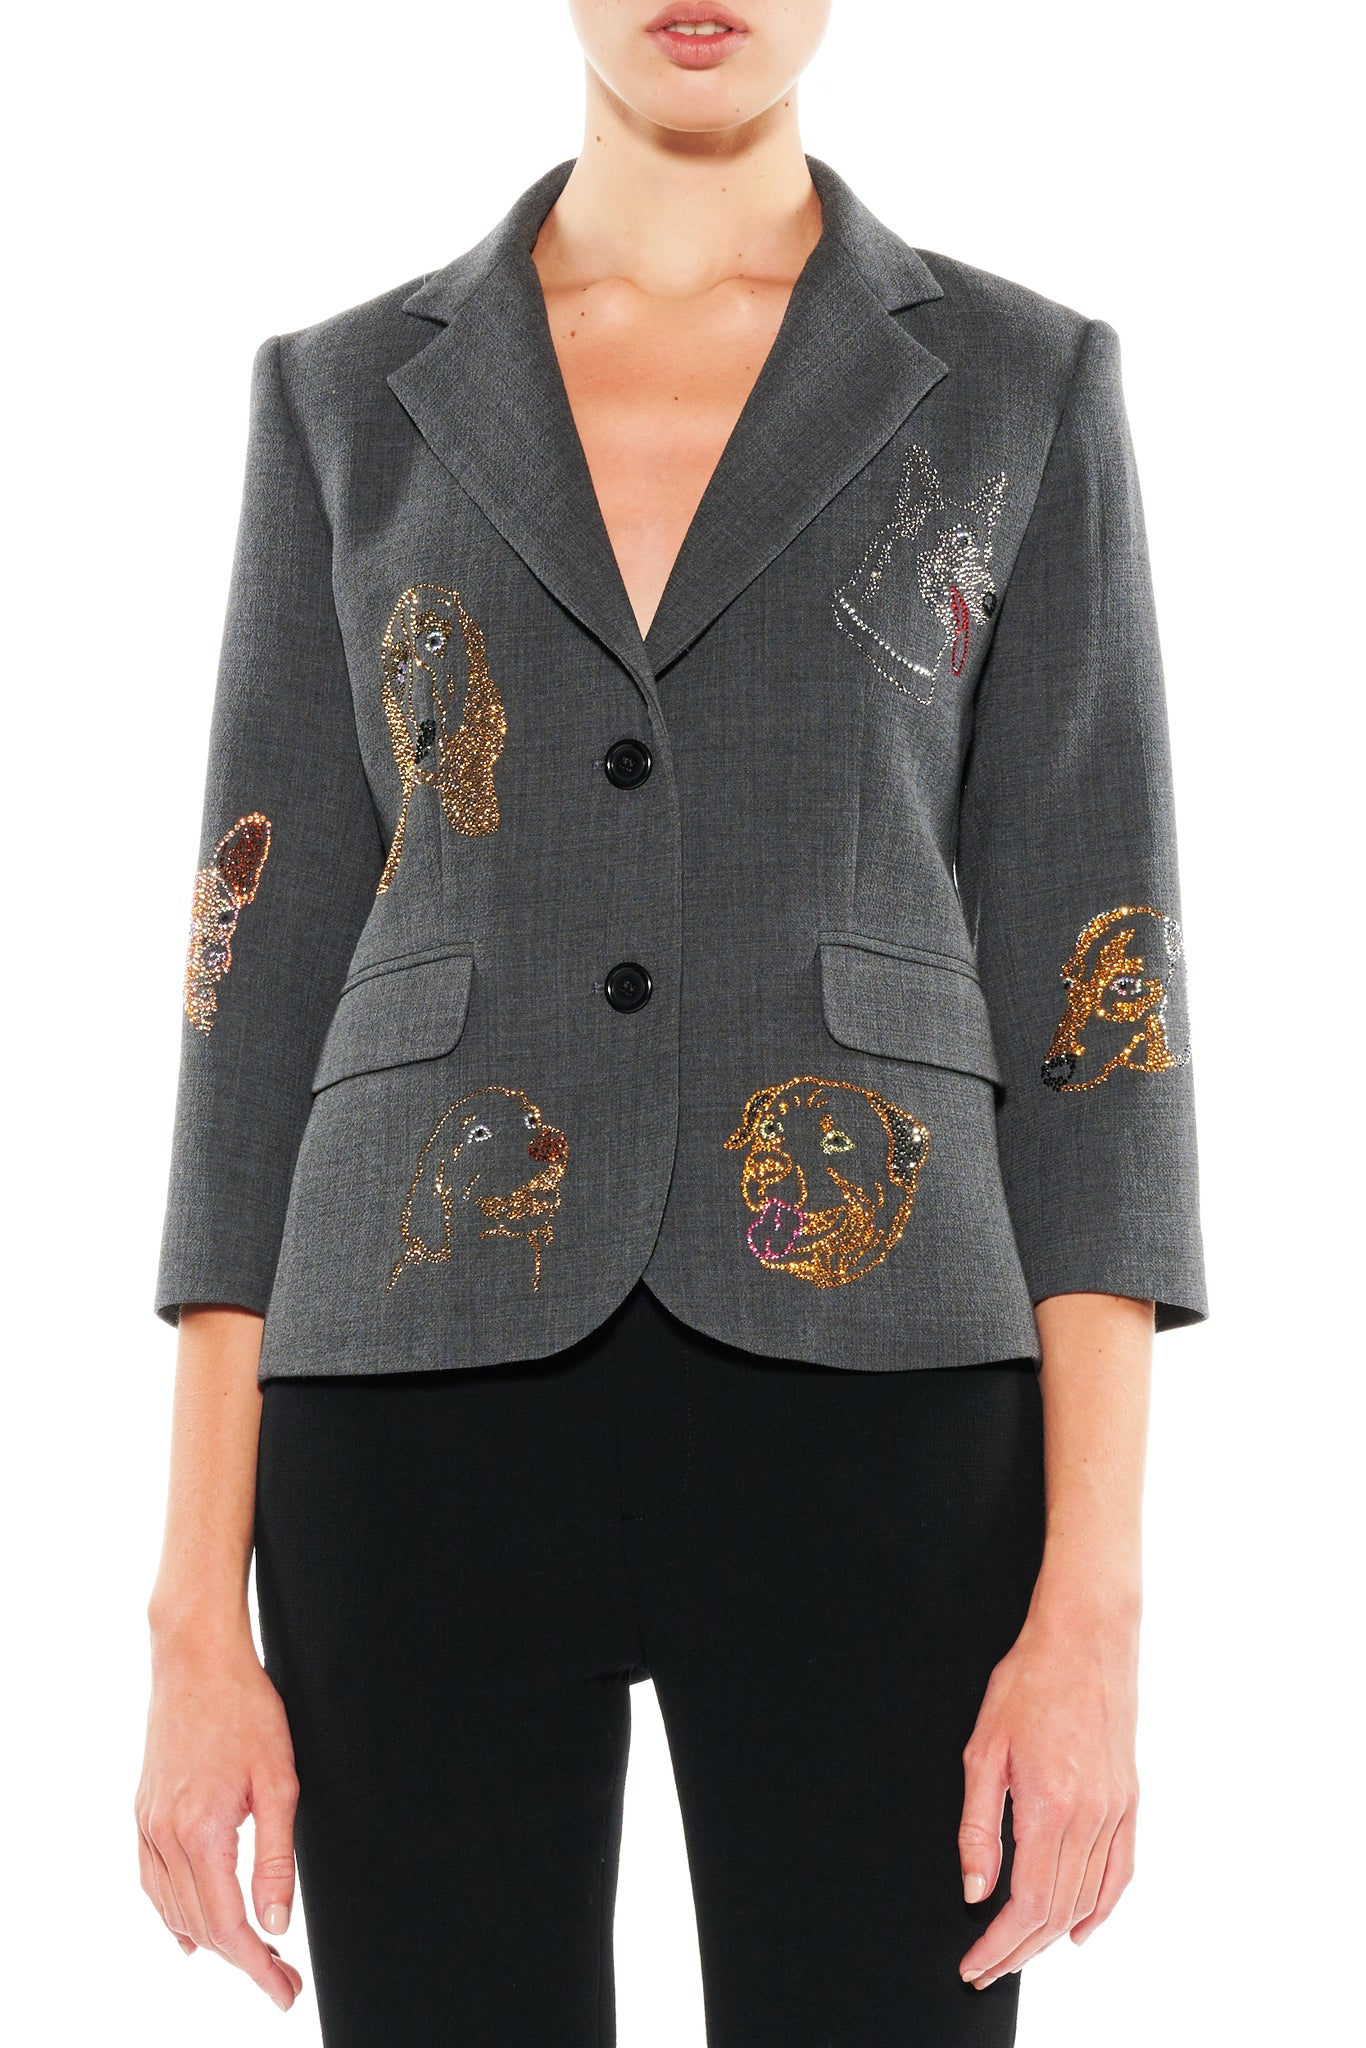 """WHO LET THE DOGS OUT"" BLAZER - Women's Jackets & Coats - Libertine"